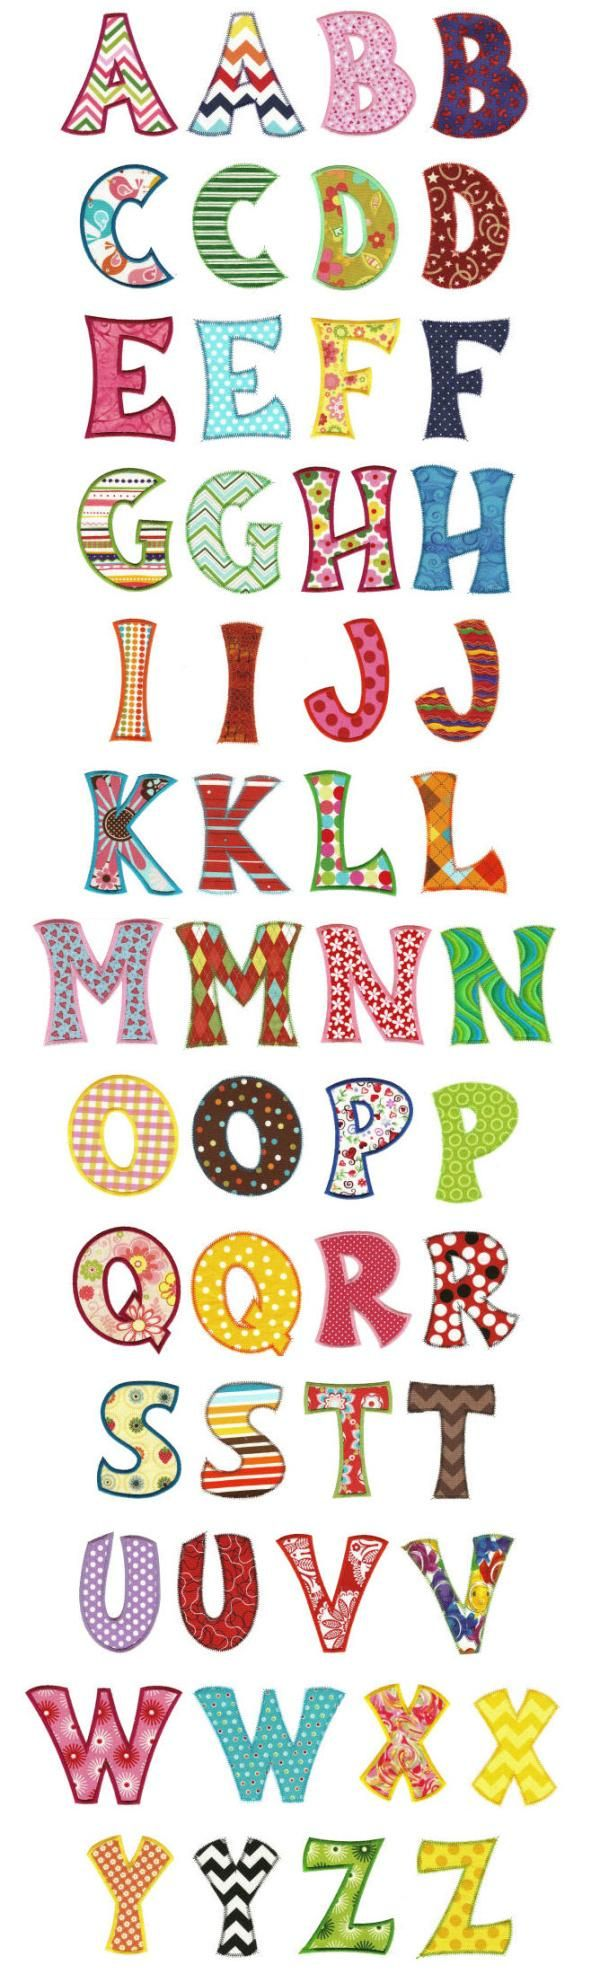 Romeo Applique Alphabet Is A Fun And Whimsical Applique Alphabet Suitable For Boys Or Girls. Each Letter Comes In A Satin And Zigzag Finish.